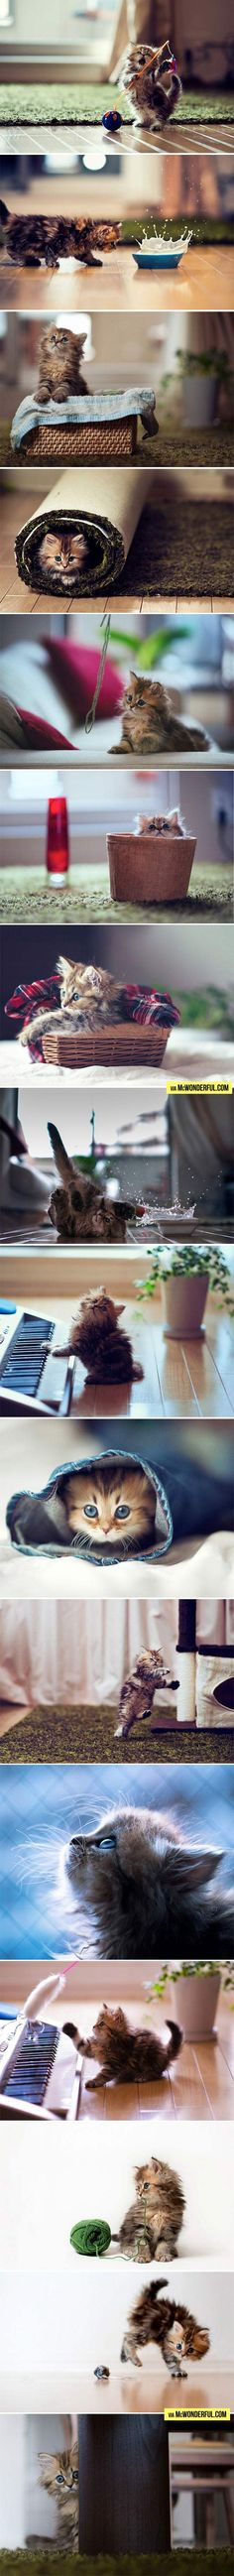 Is this the cutest kitten ever!!